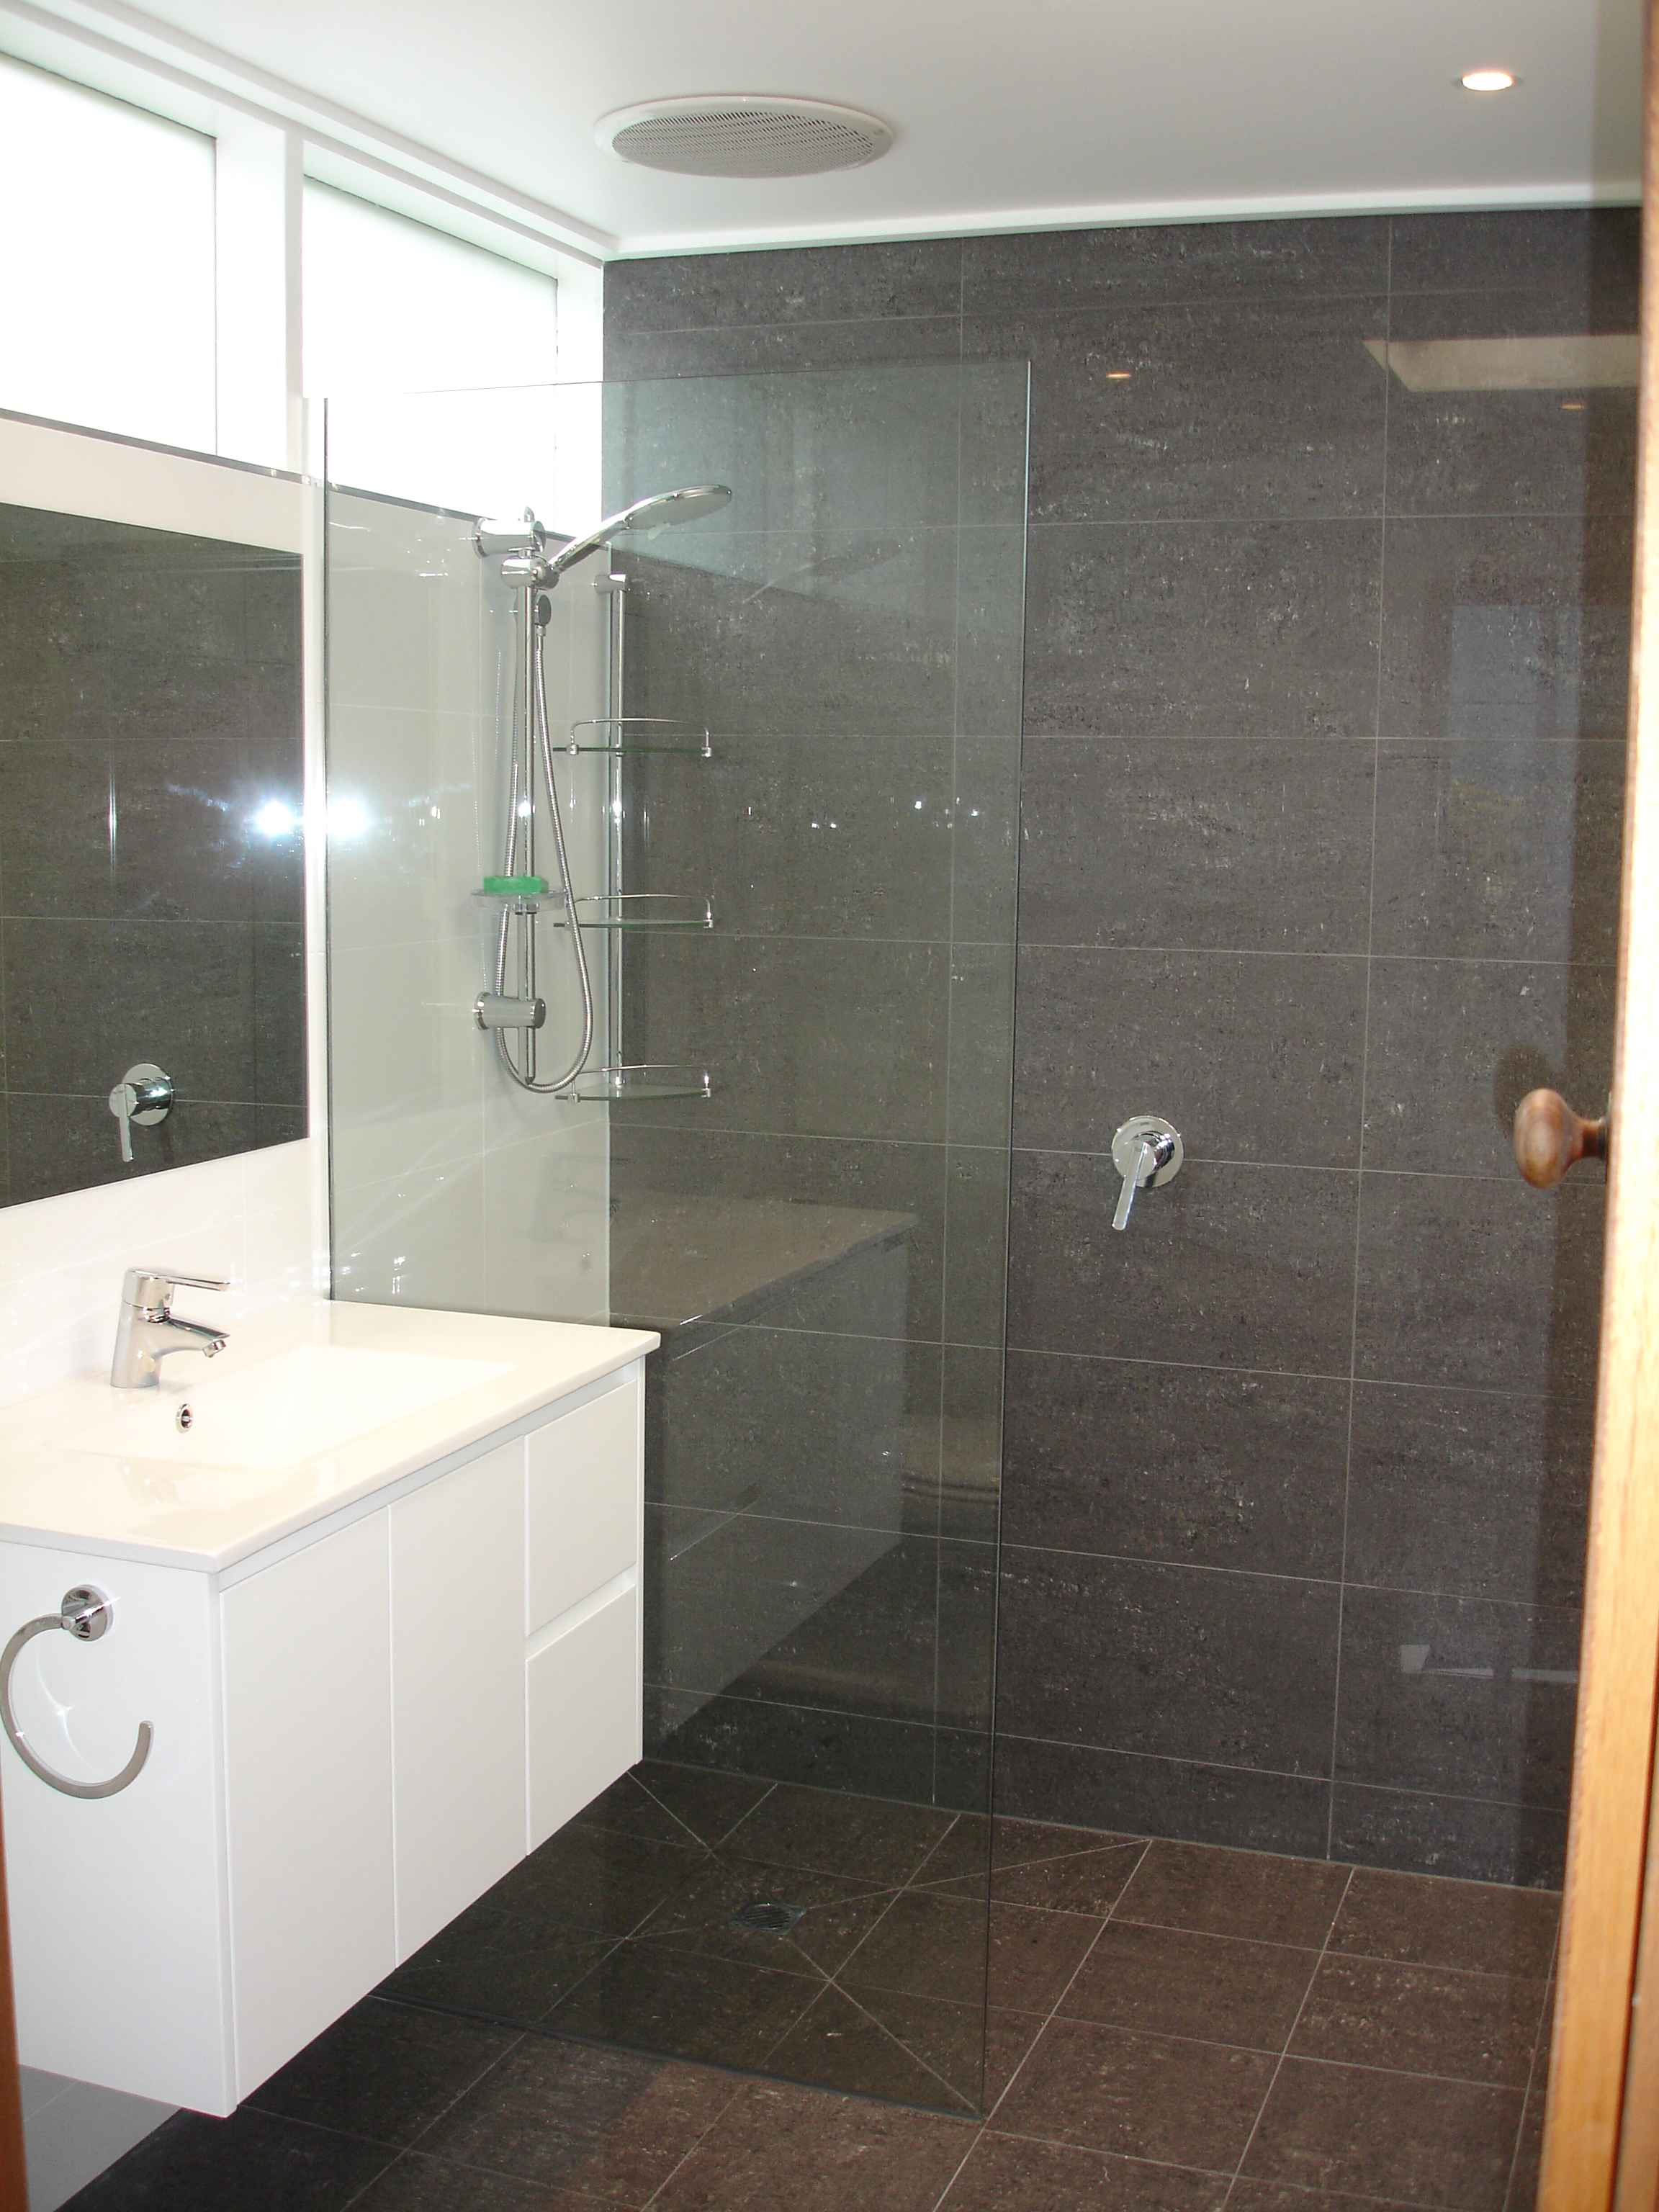 19 kitchens and bathrooms melbourne stainless steel for Bathroom decor melbourne